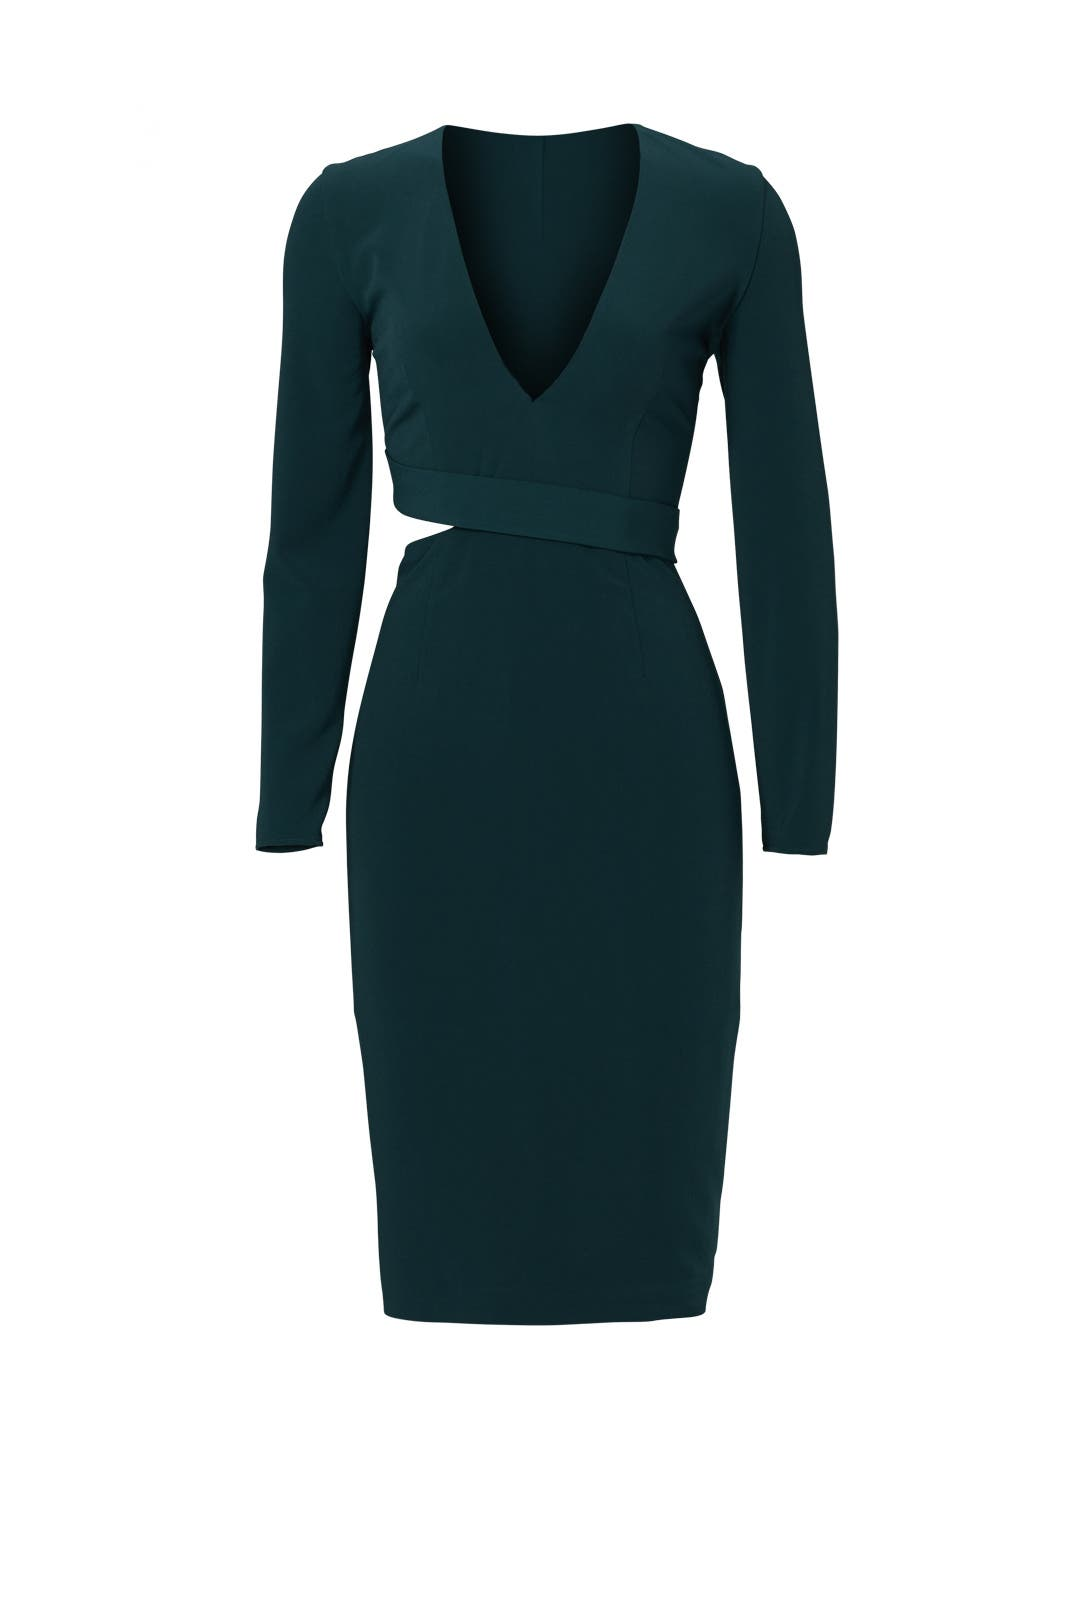 Dresses for Women - Party, Formal, & Casual Dresses